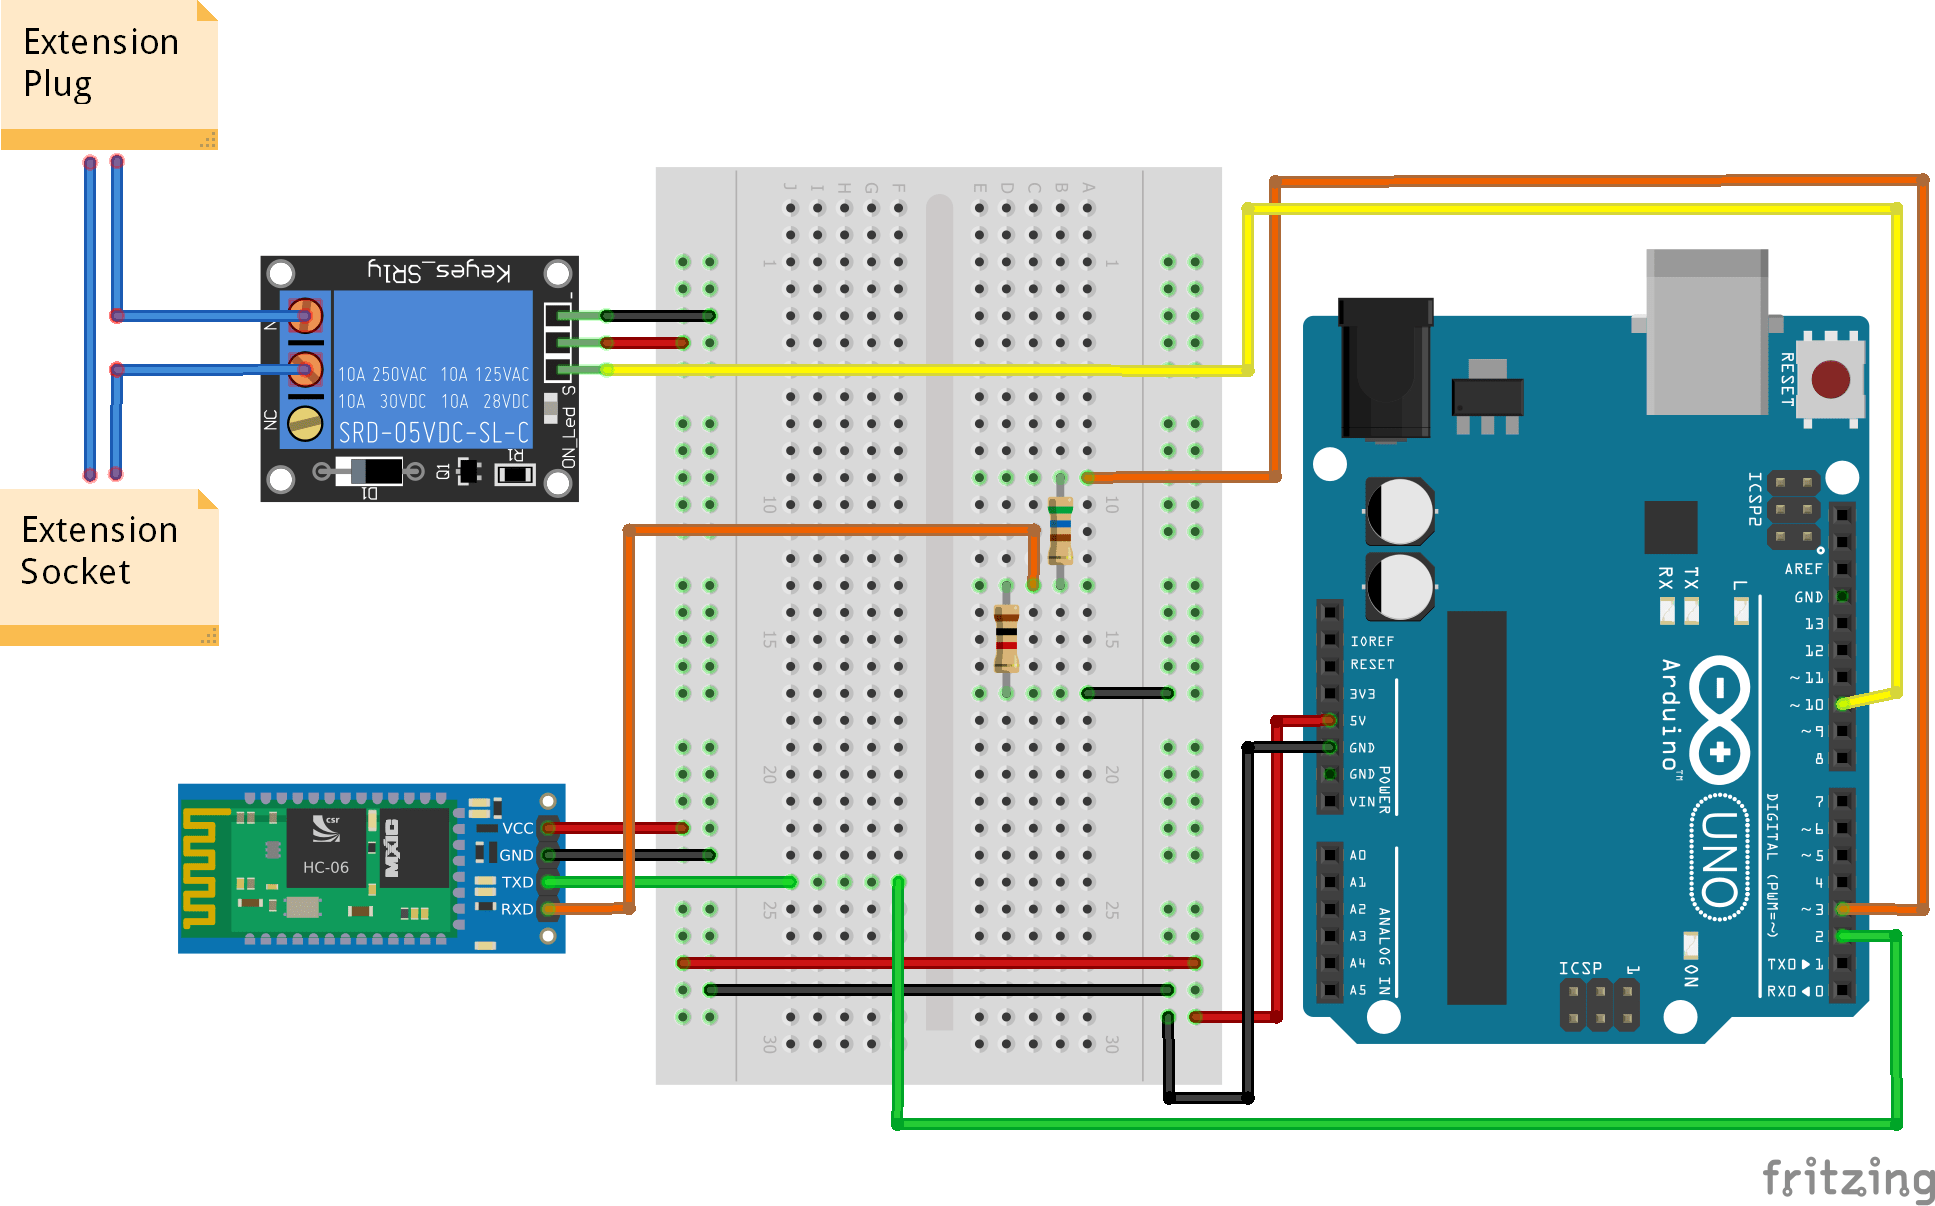 download image 3 pin led flasher relay wiring pc android iphone and download image flashing led circuit diagram pc android iphone and [ 1935 x 1206 Pixel ]